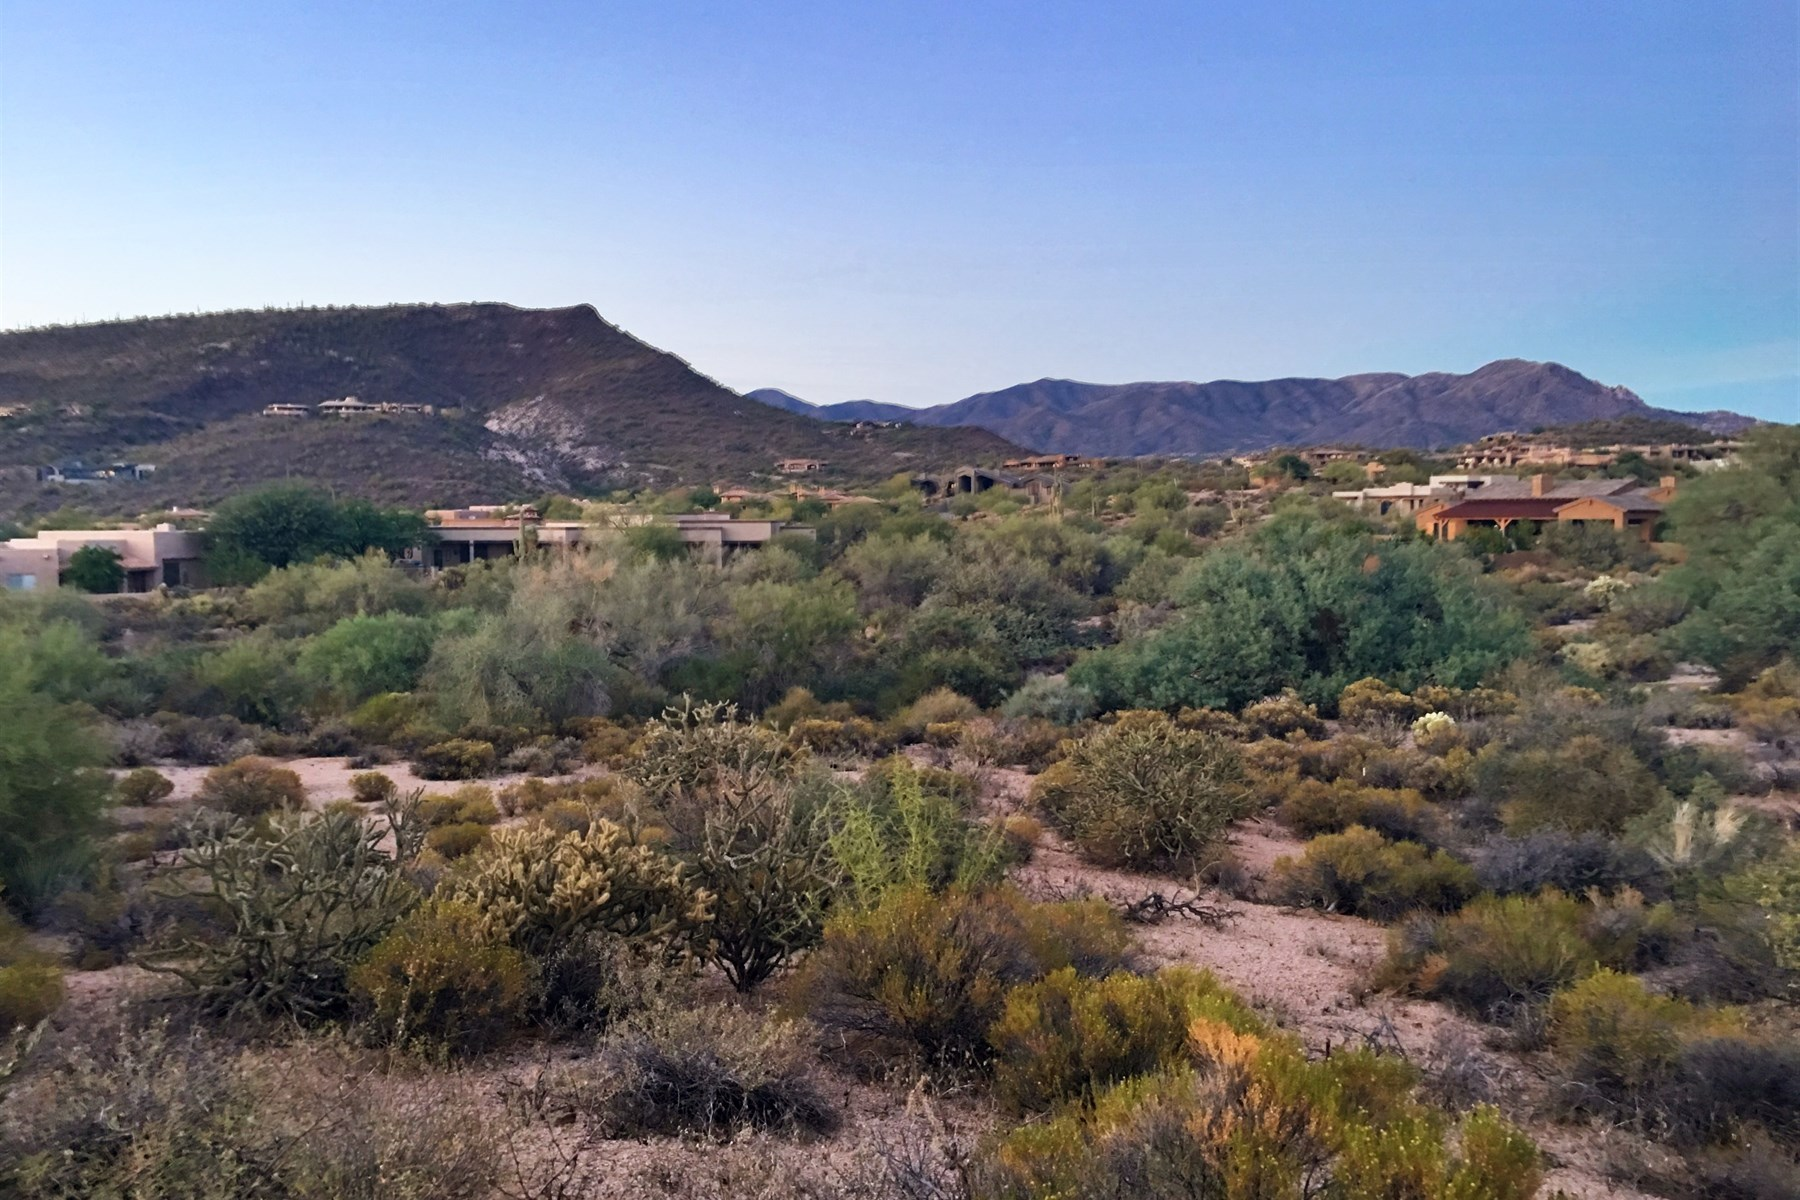 Terreno para Venda às Non membership homesite in Desert Mountain's Village of Gambel Quail 9556 E Celestial Dr #62 Scottsdale, Arizona, 85262 Estados Unidos